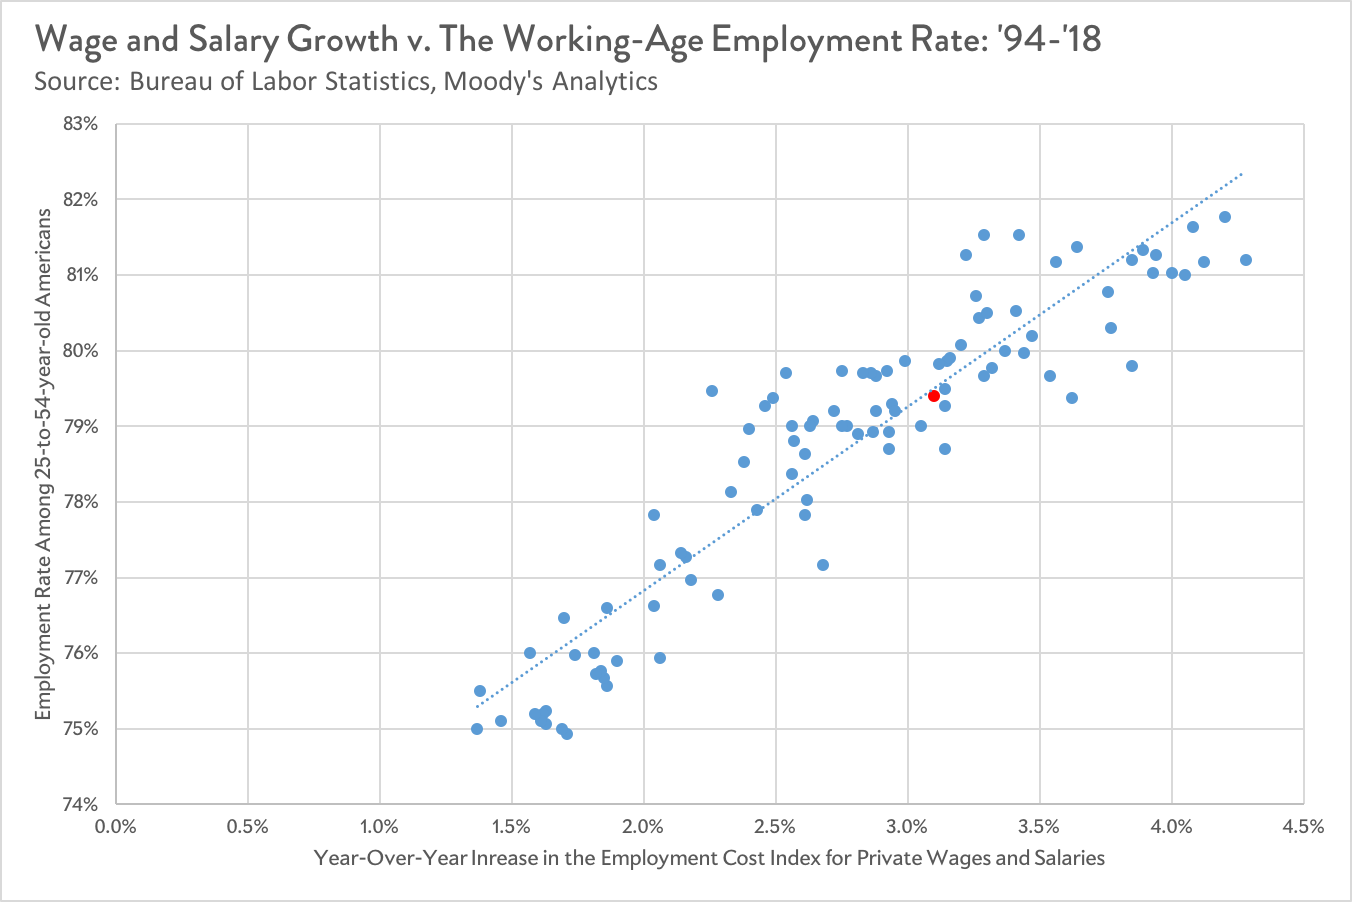 This chart compares year-over-year employment for the working-age population compared to ECI and it's a straight line.